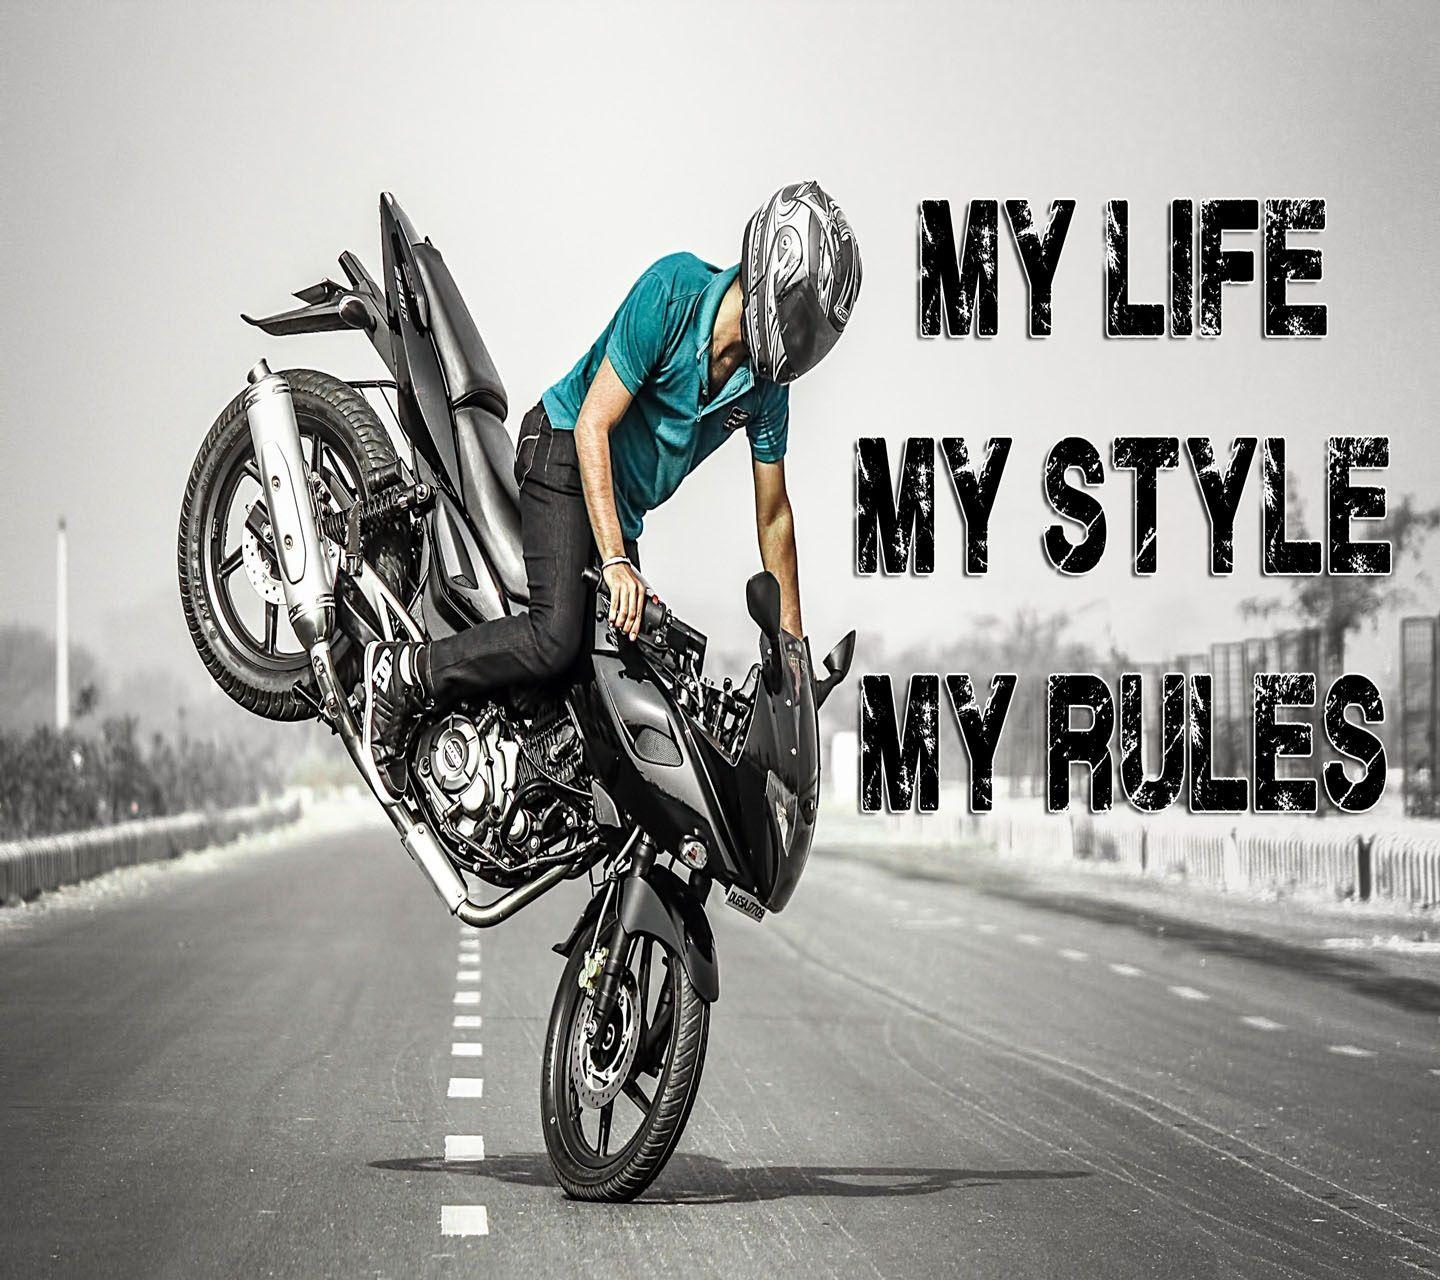 My Life My Rules My Attitude Wallpapers For Girls Cool Boy Wallpapers Wallpaper Cave